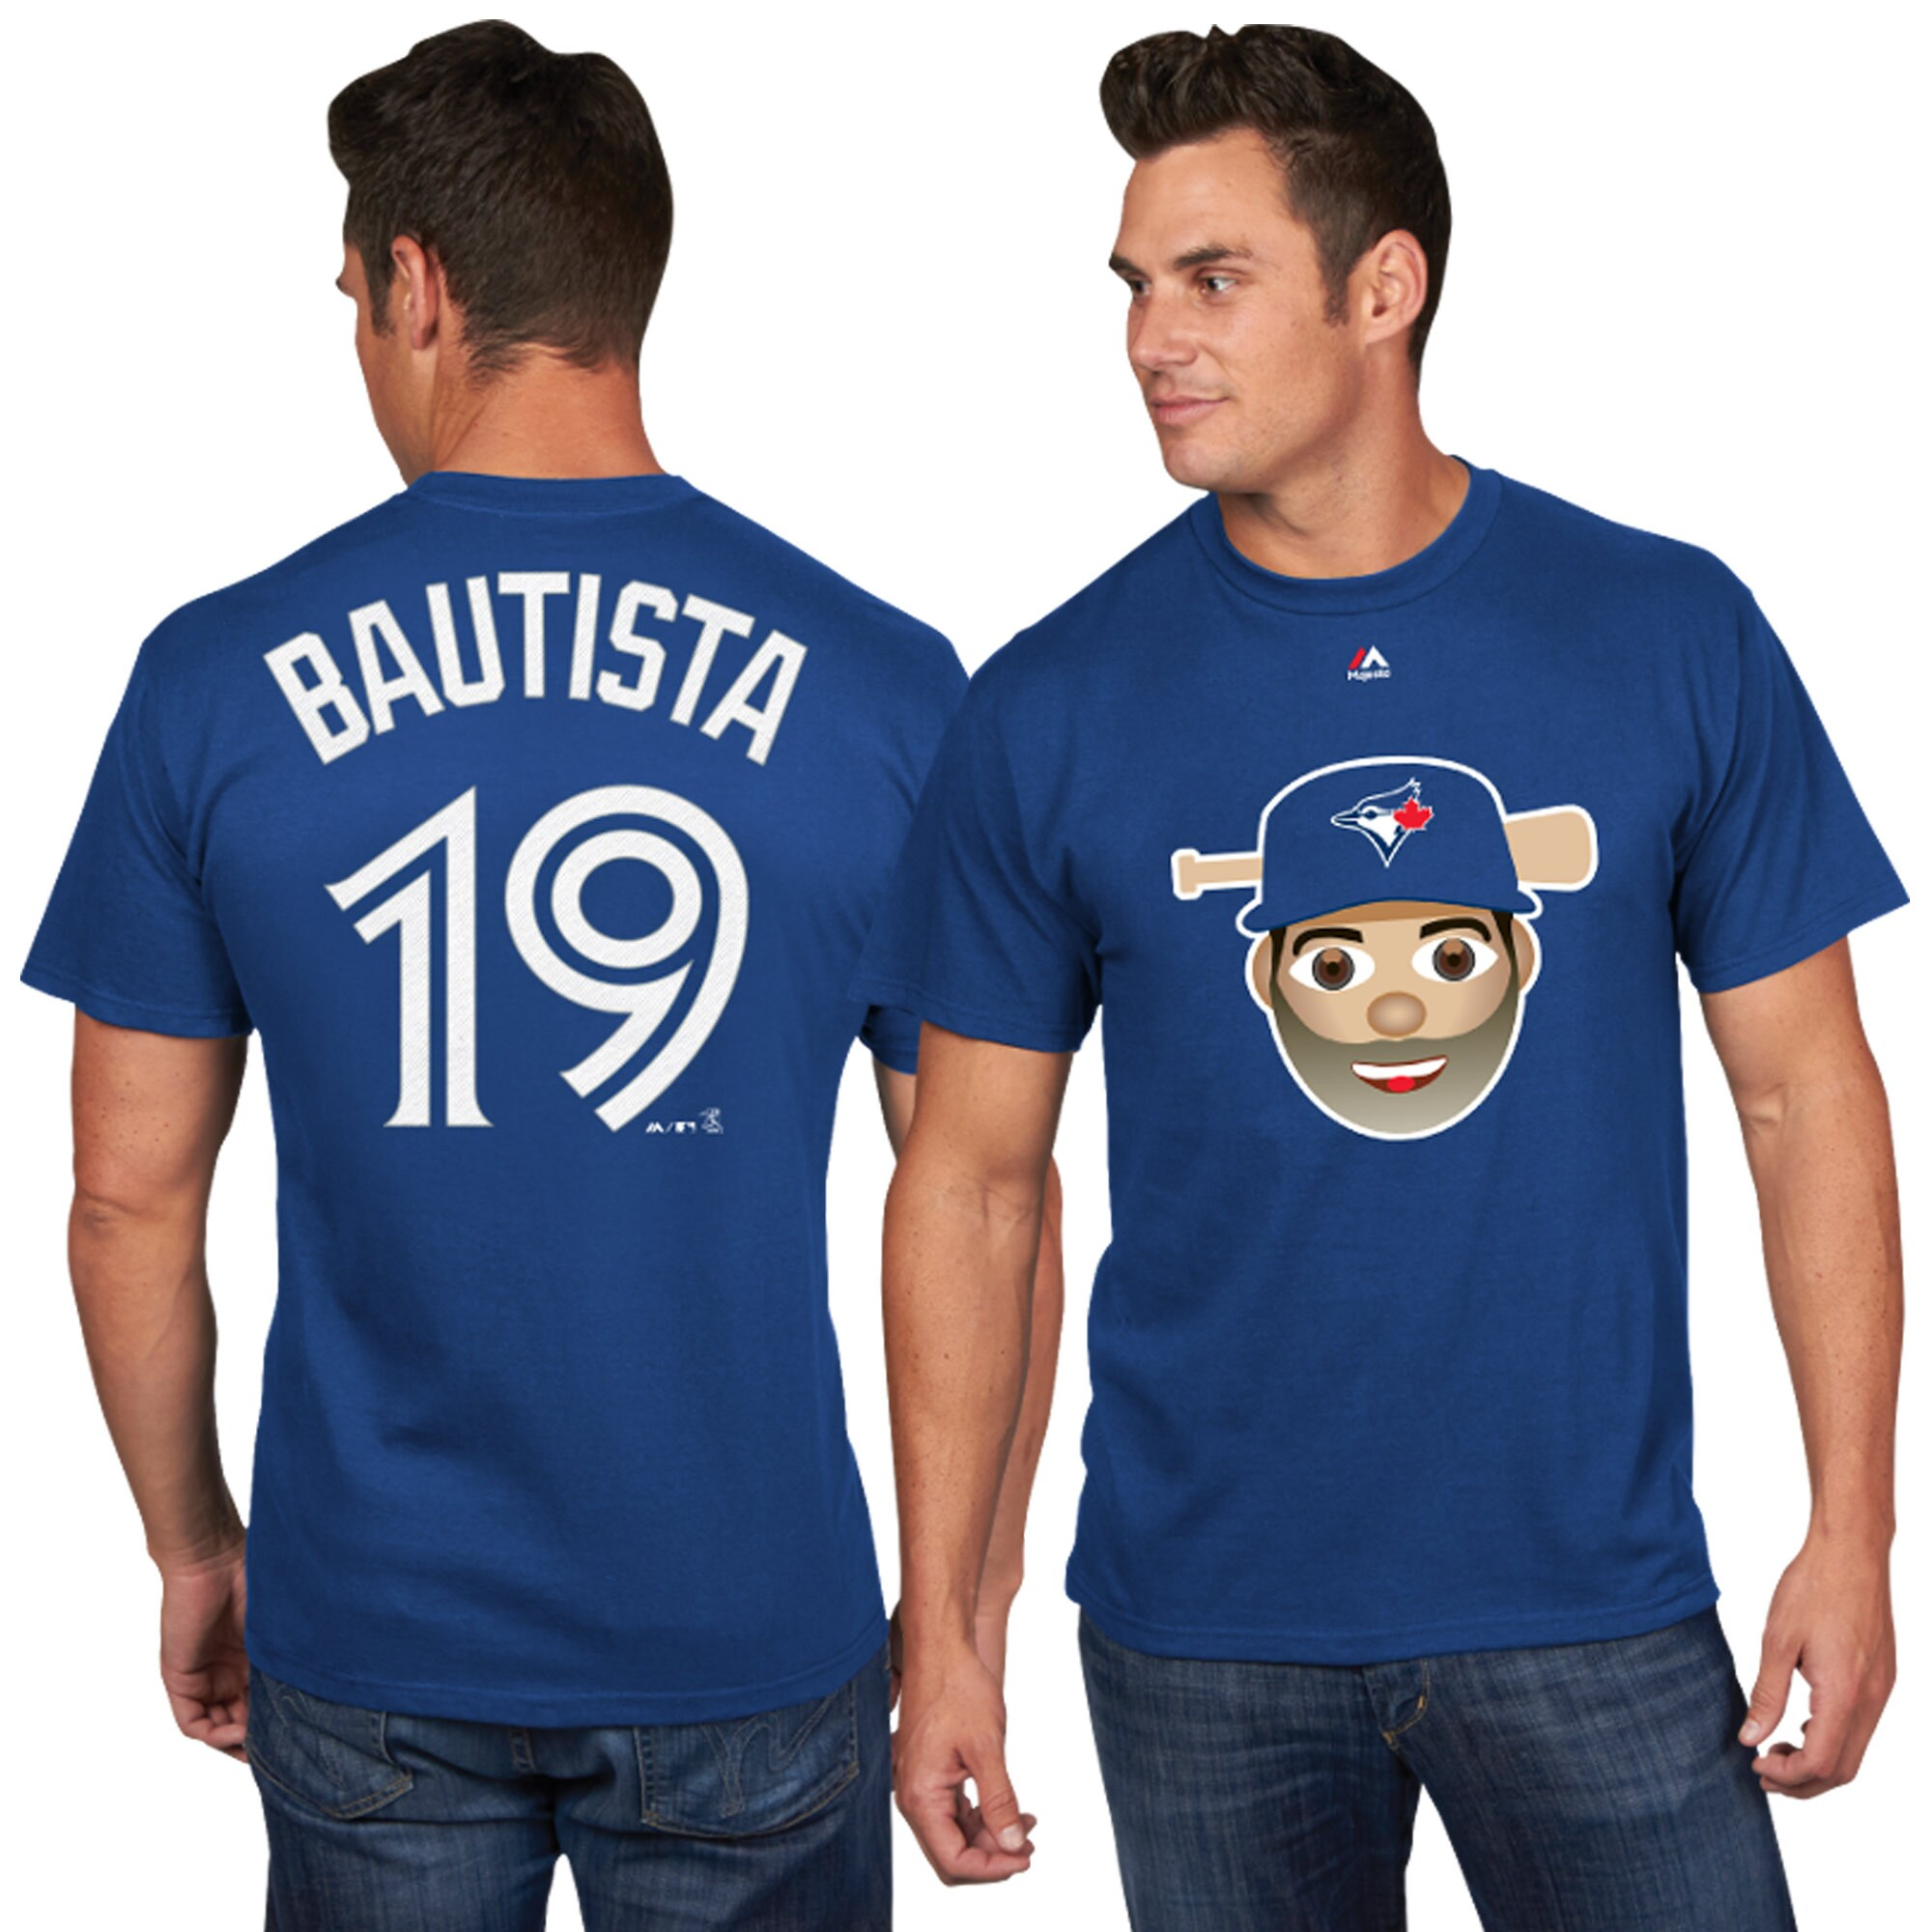 Jose Bautista Toronto Blue Jays Majestic Player Name & Number Emoji T-Shirt - Royal